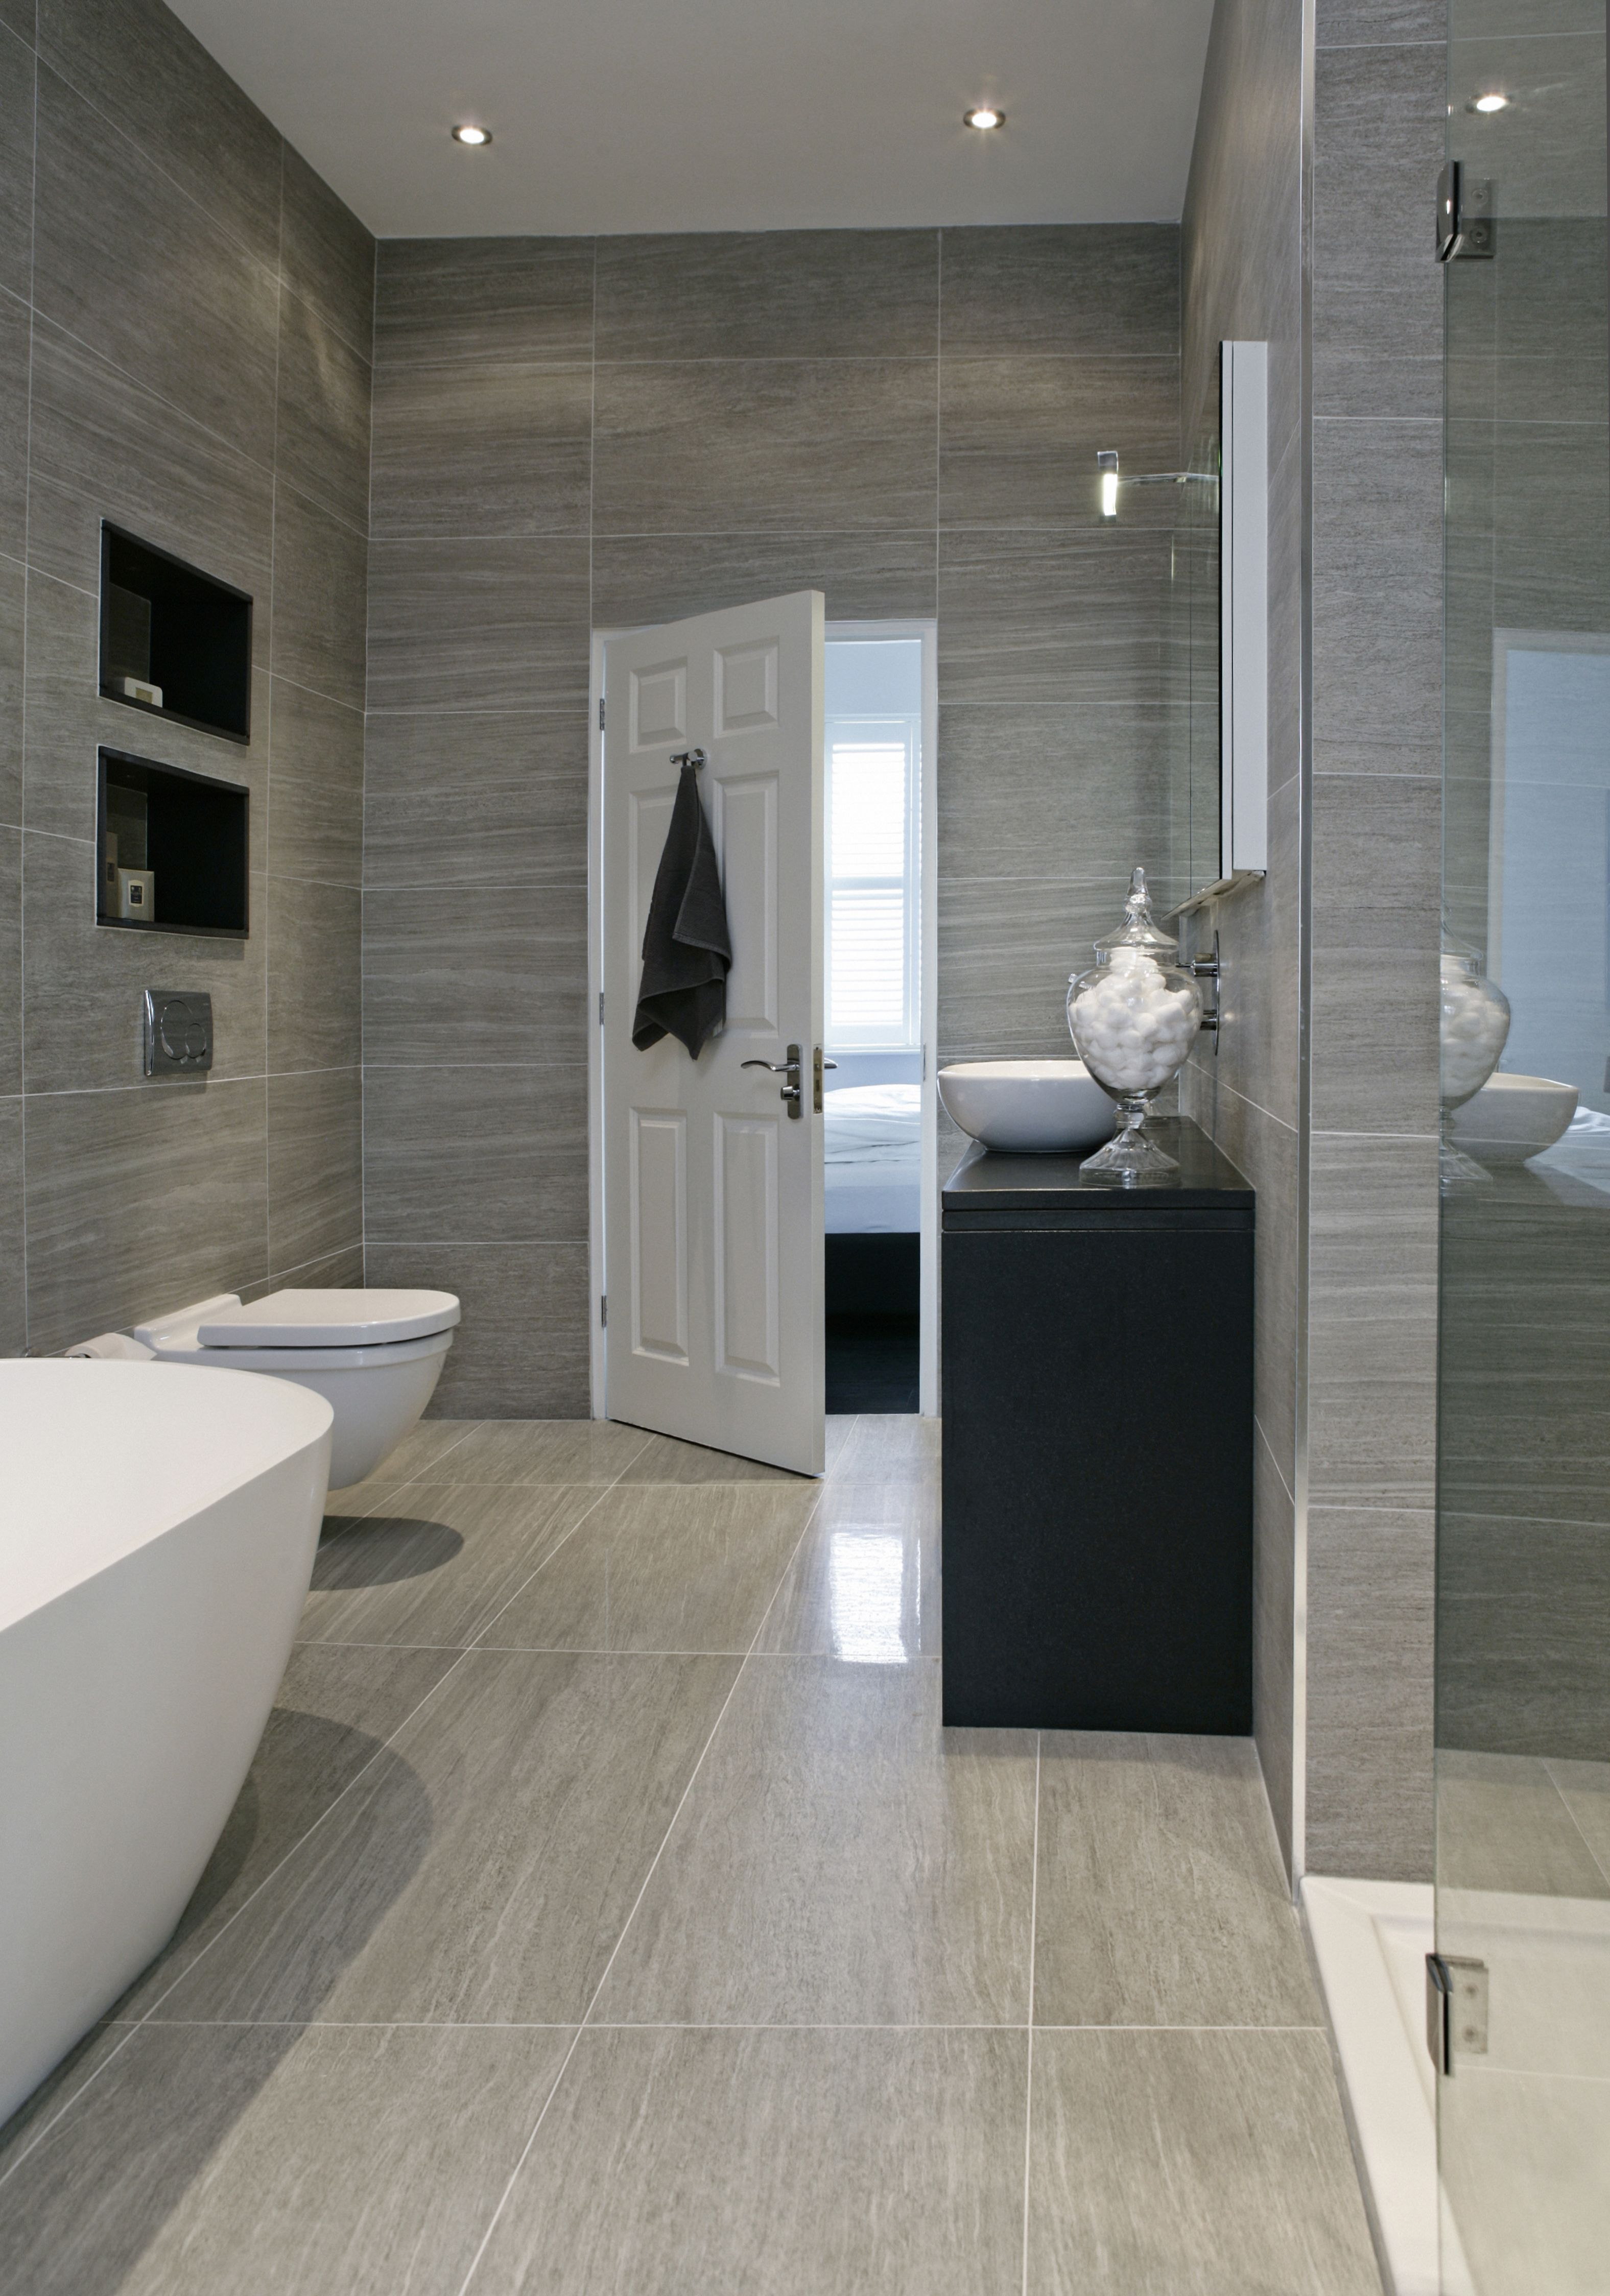 Boscolo the townhouse bathroom bathrooms pinterest for Townhouse bathroom ideas